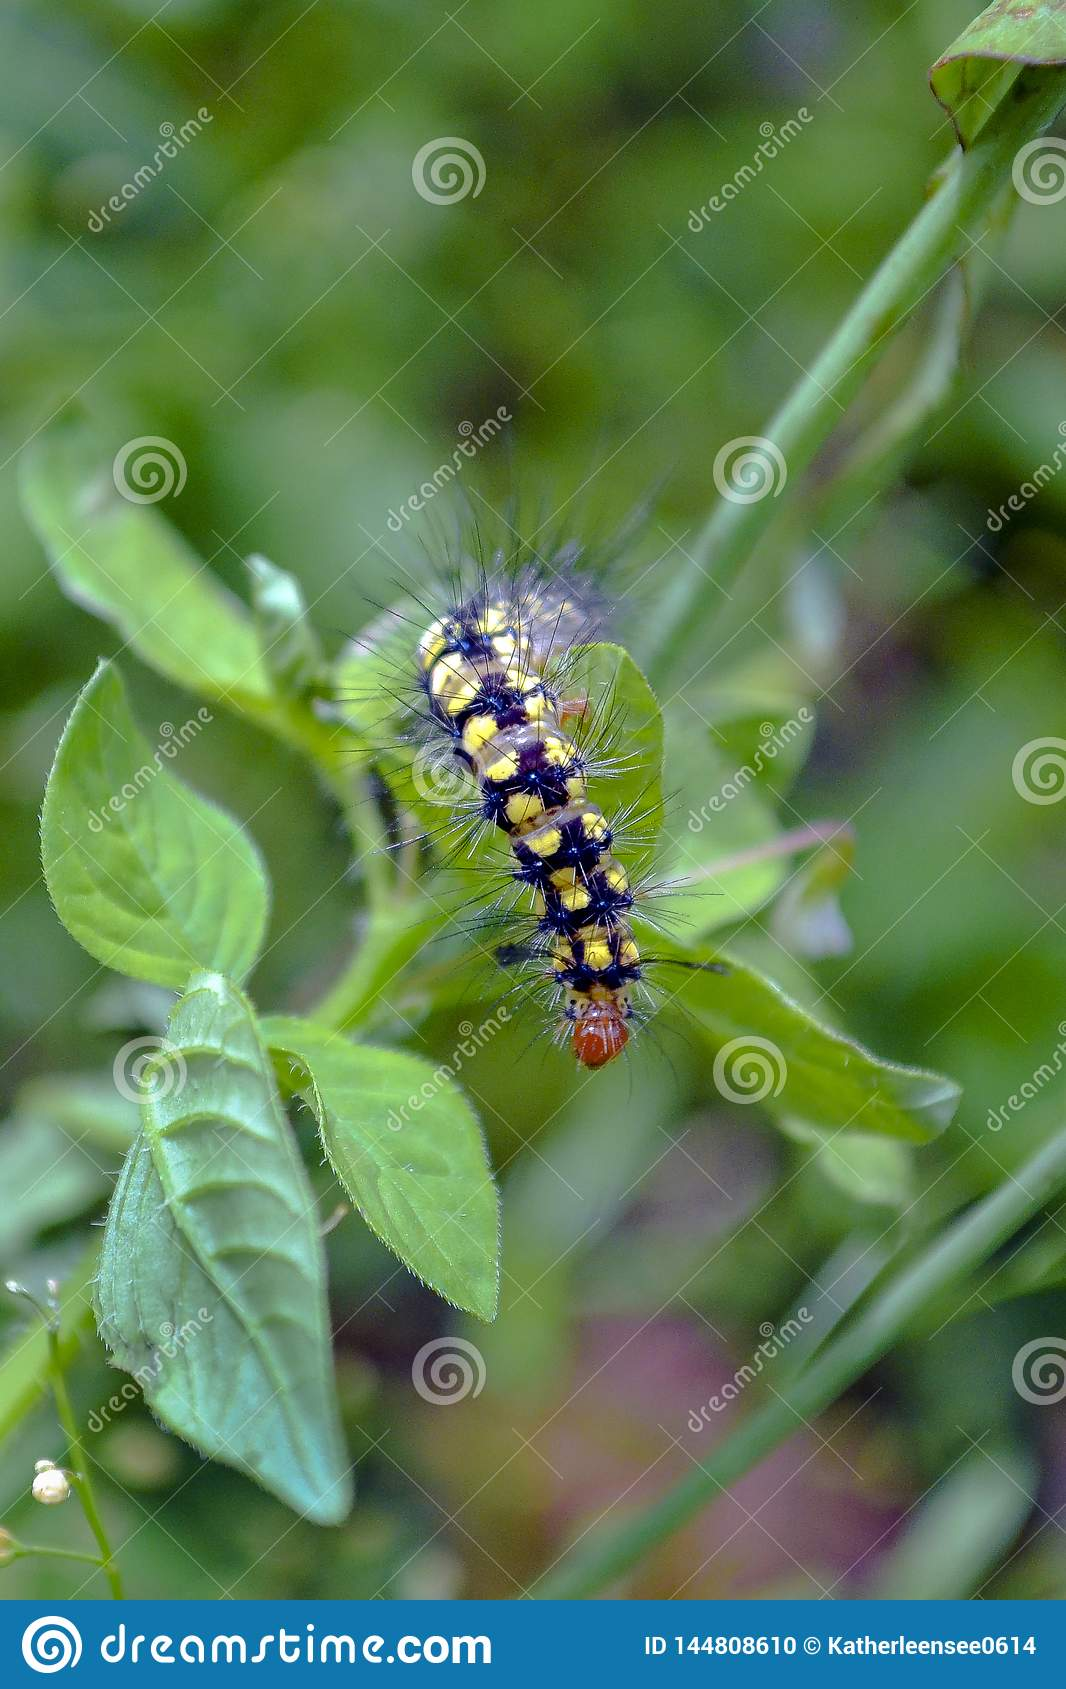 A caterpillar stay on the leaf